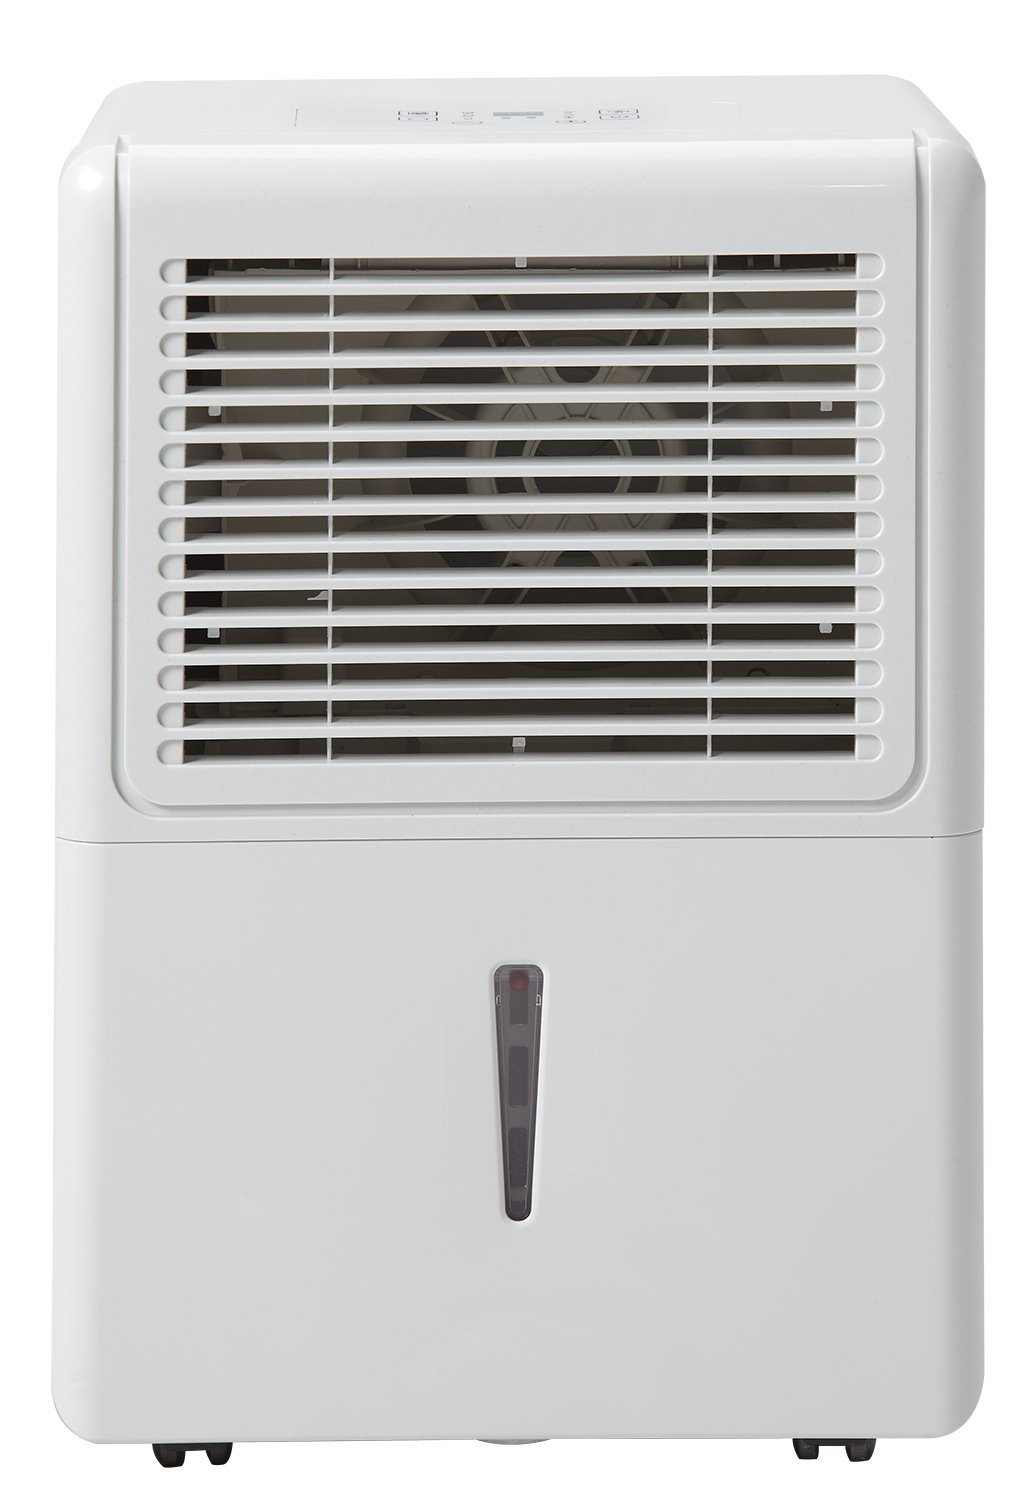 61PpDEJScuL._SL1500_ best dehumidifier reviews and ratings (2017 buying guide & top picks)  at gsmportal.co